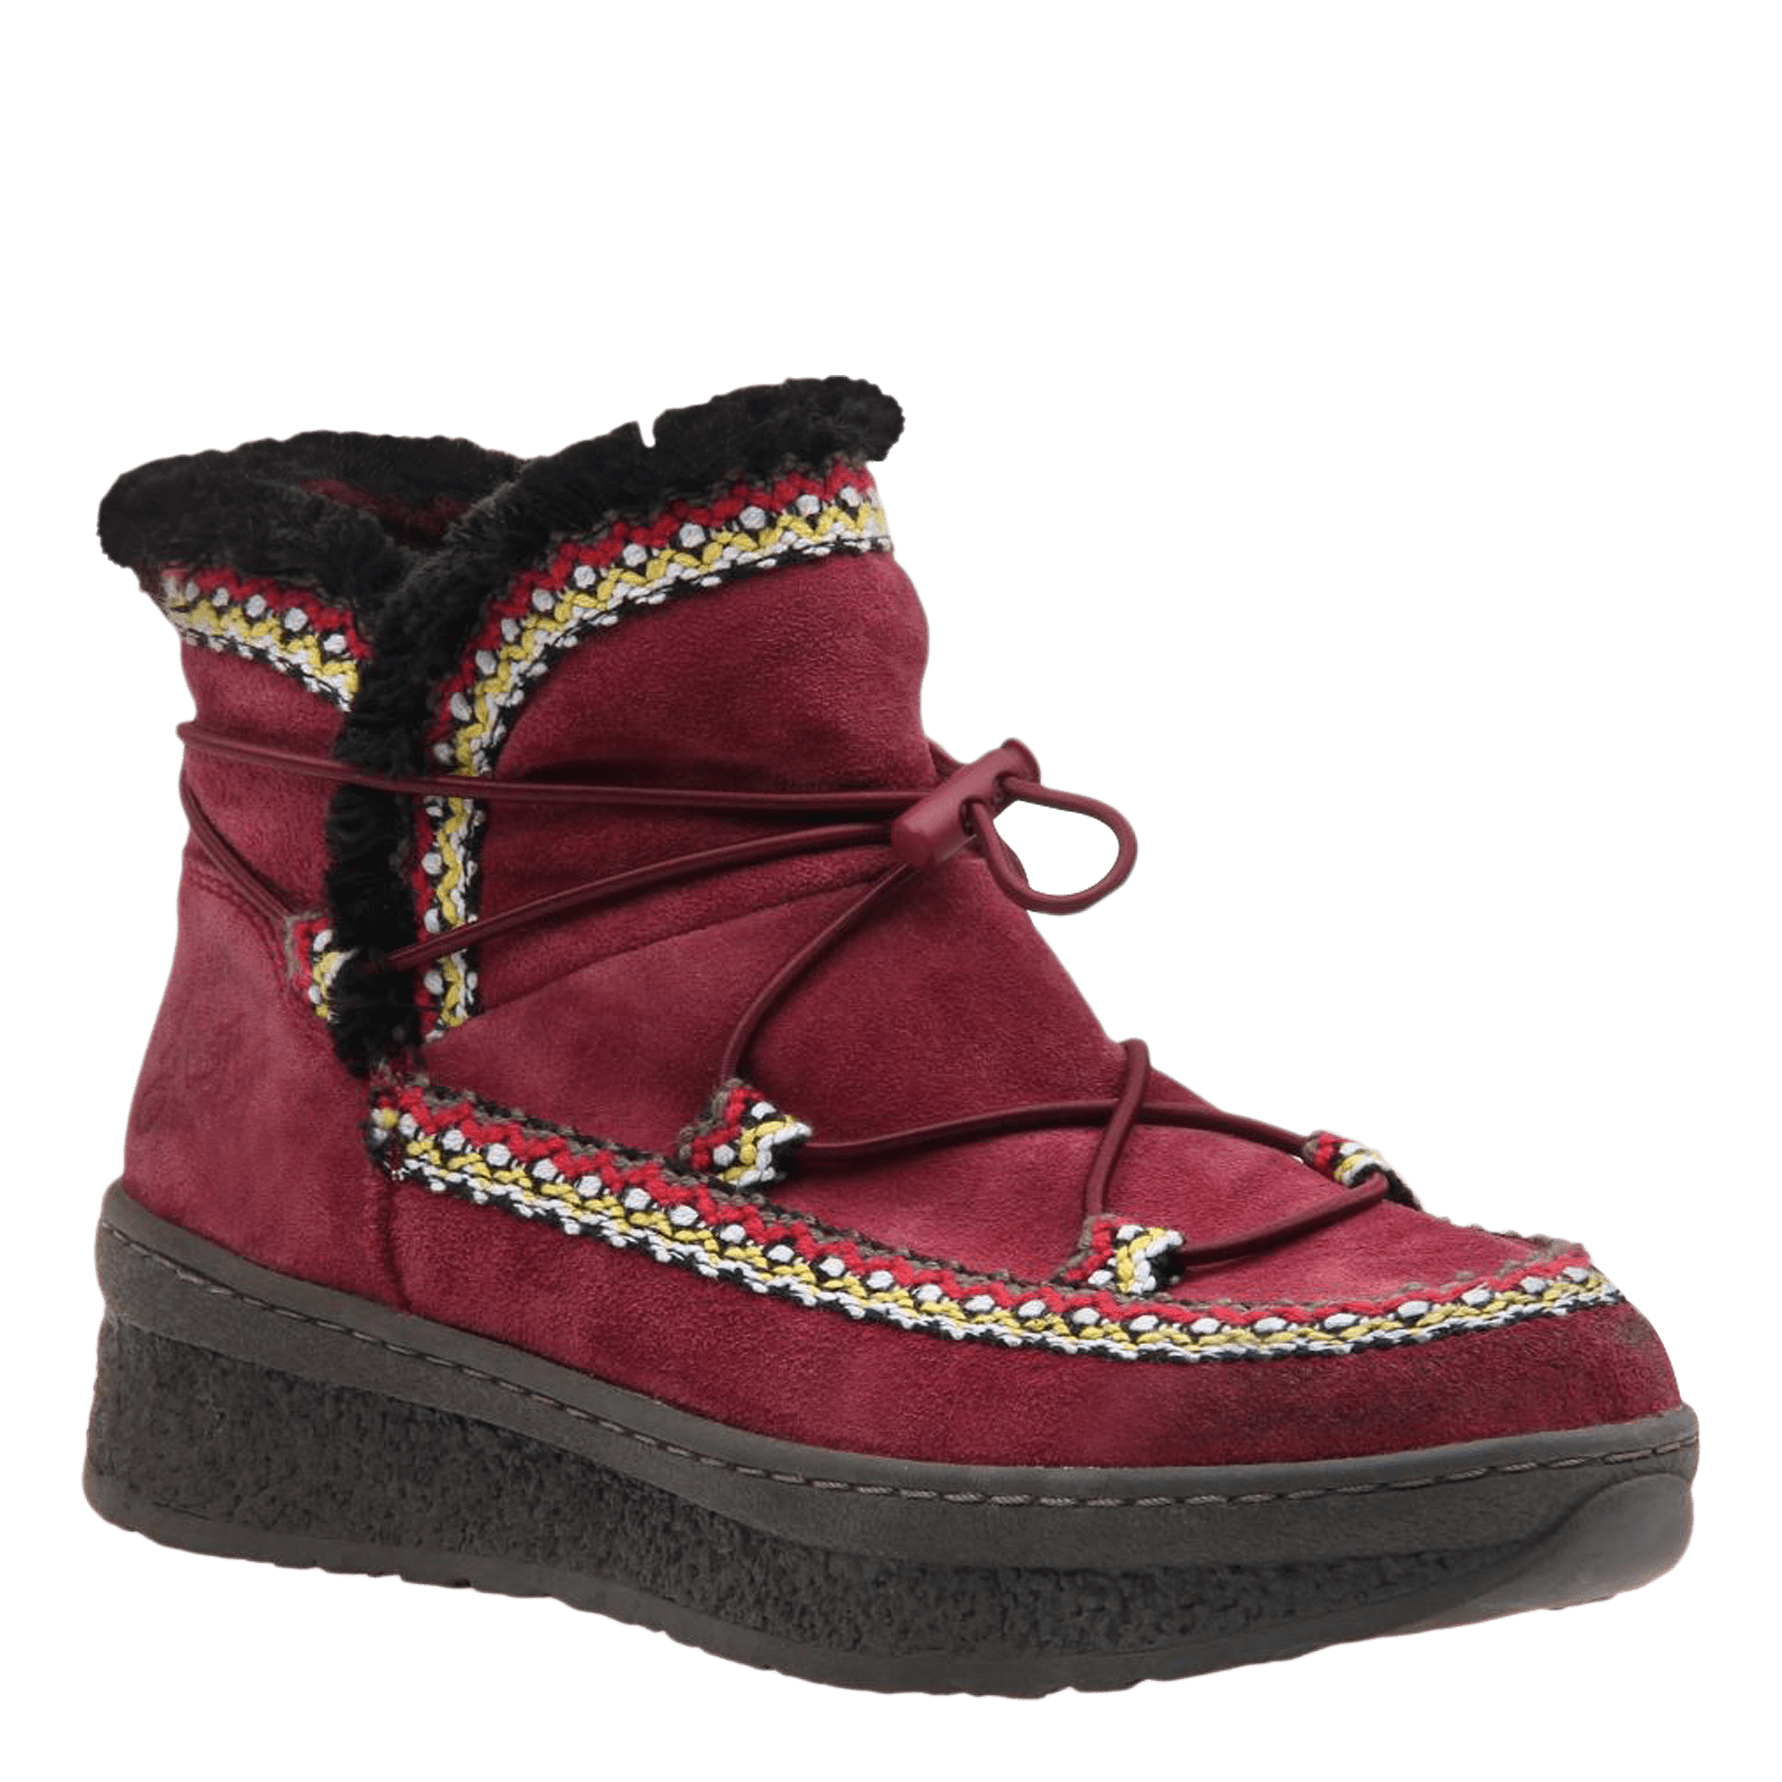 Womens cold weather boot Terreno in cherry